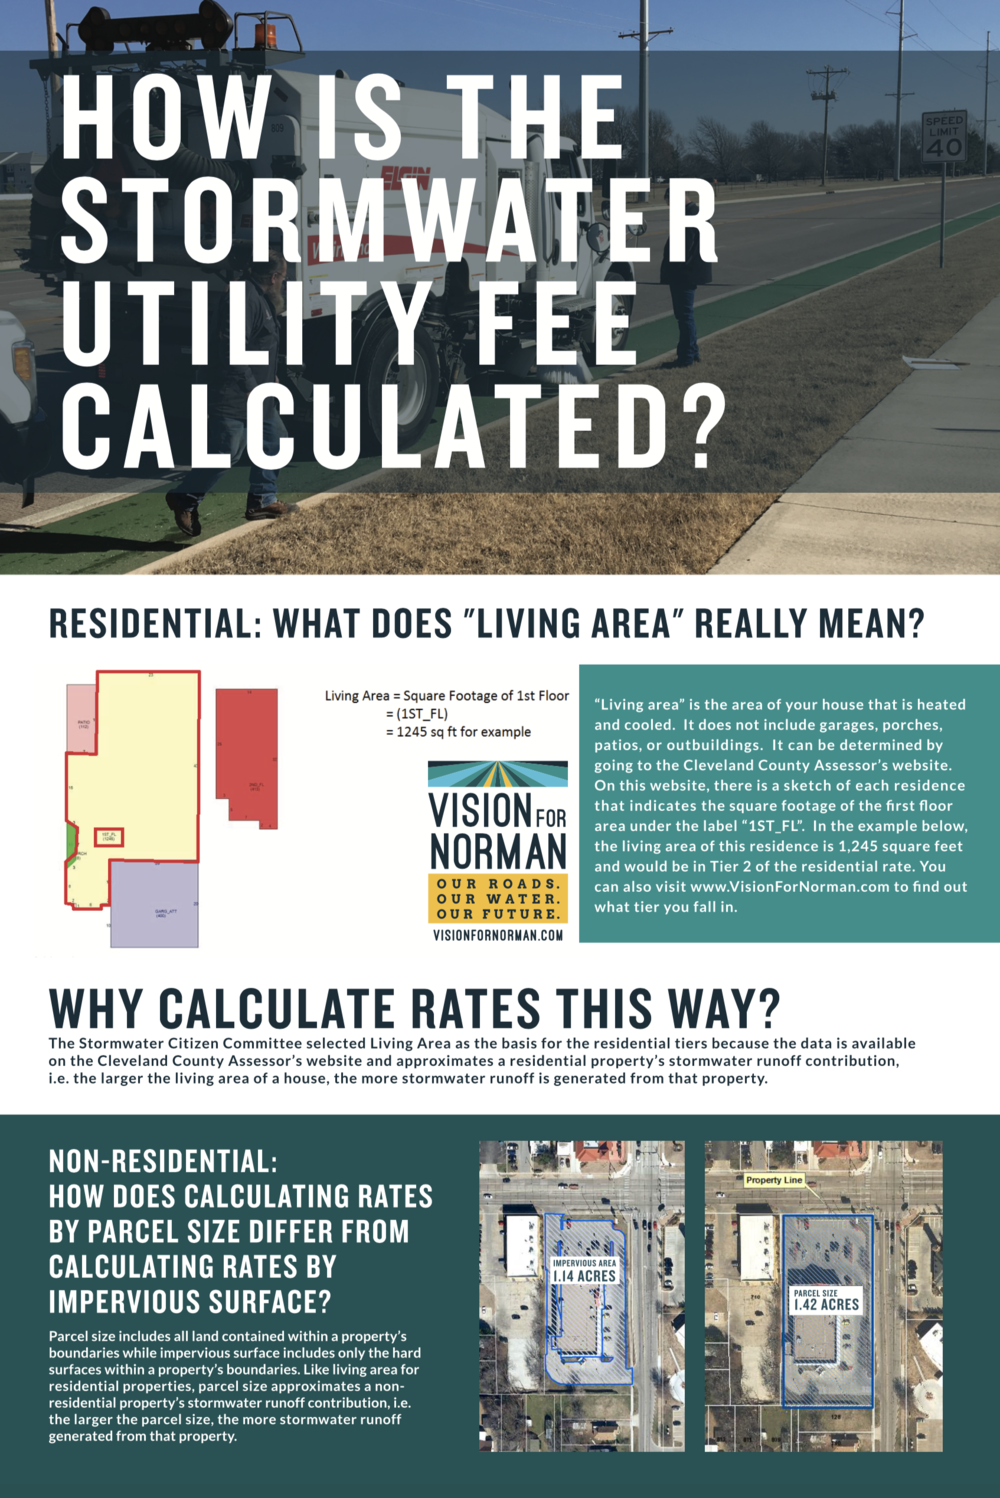 How is the Stormwater Utility calculated?